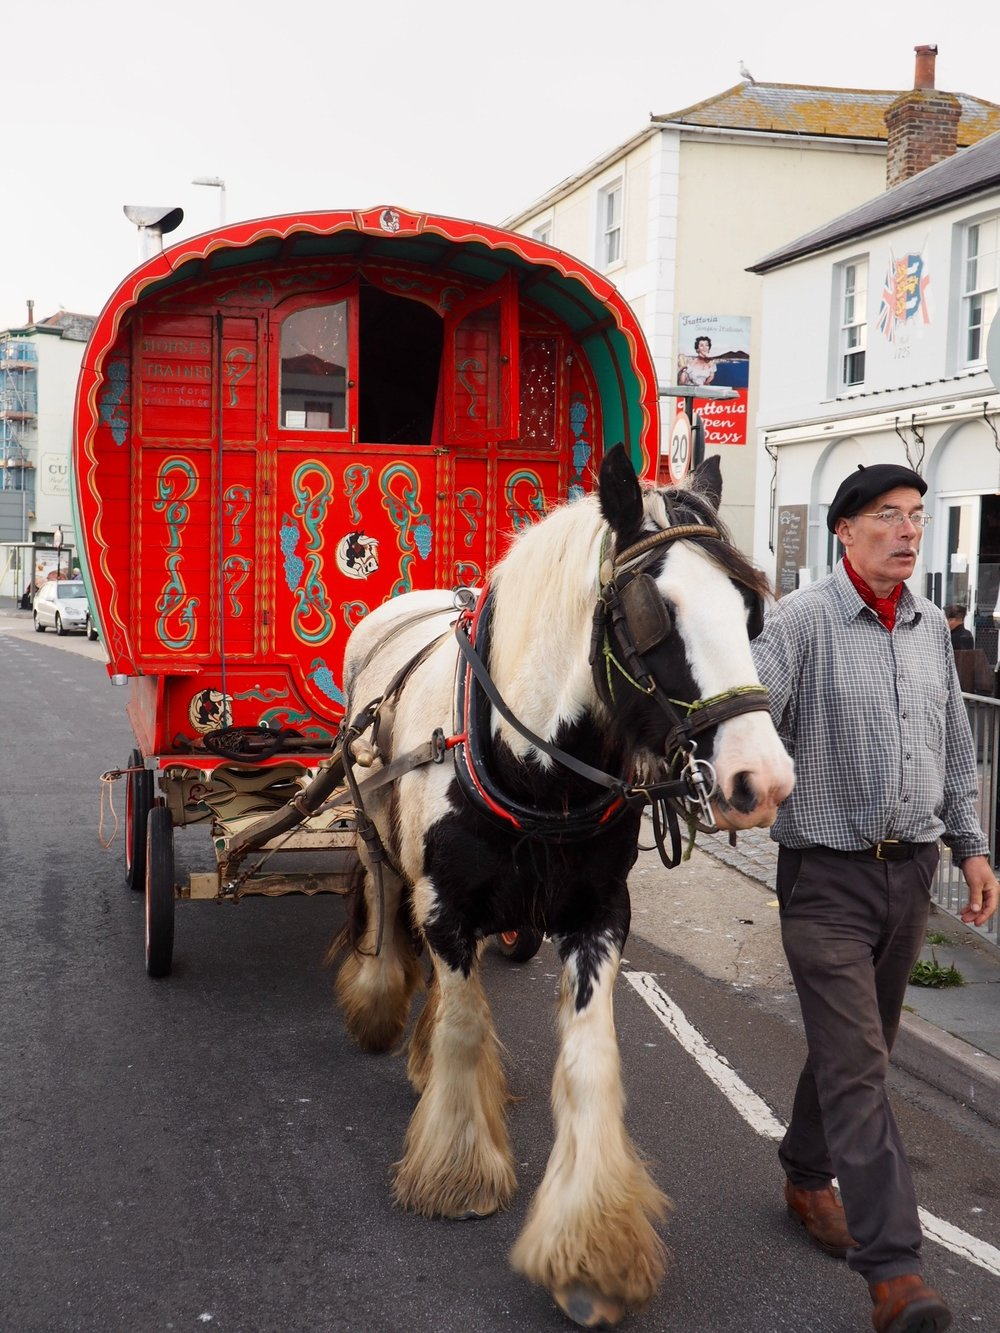 Horse & cart in Hastings.